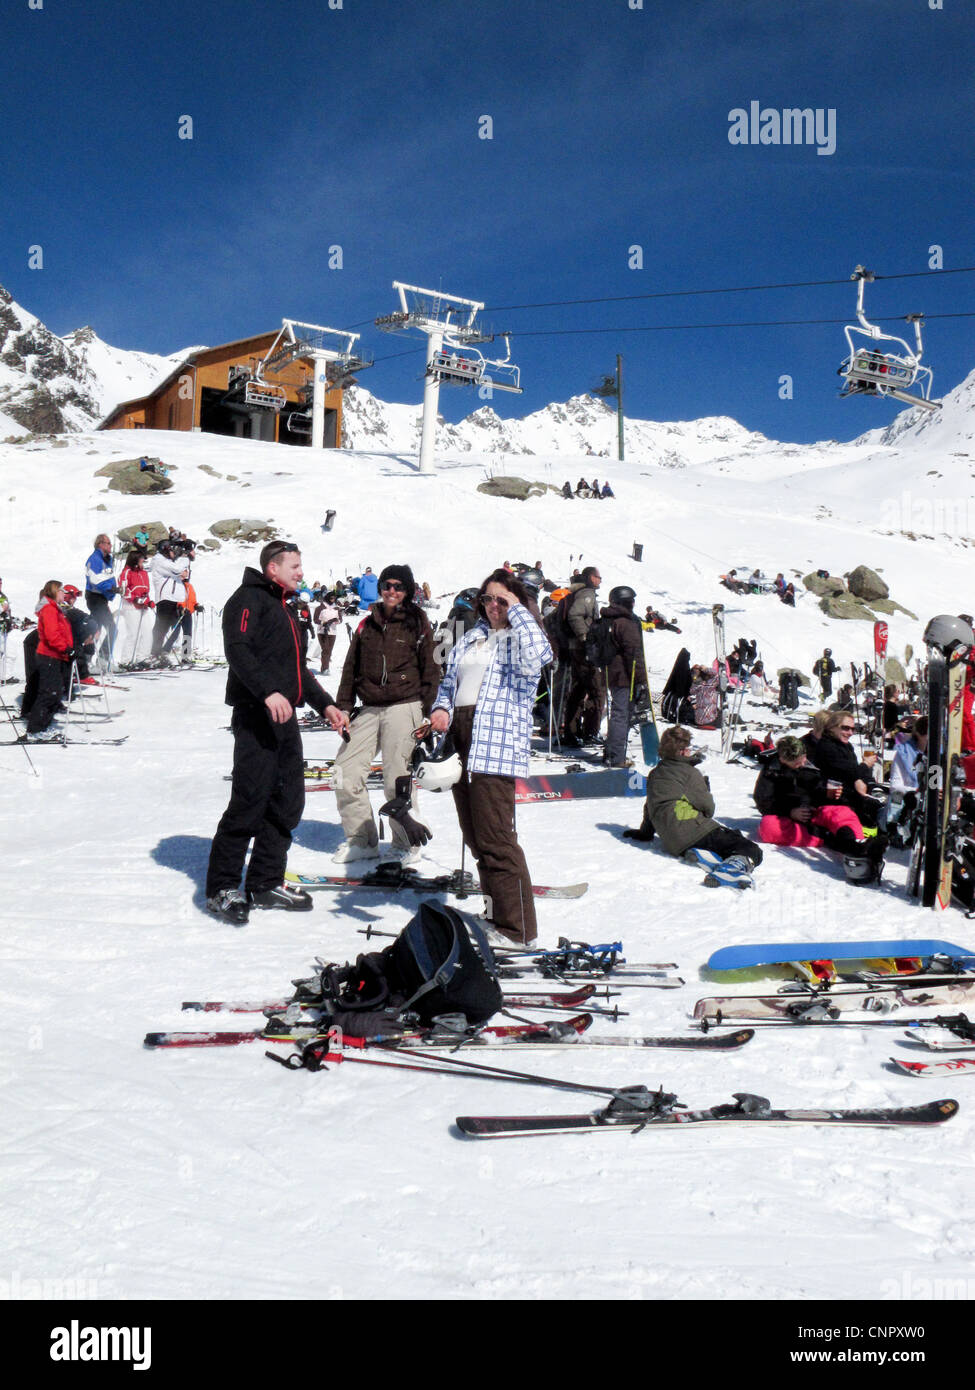 France skiing - Skiers getting ready to go on the ski lifts, Val Thorens, Three Valleys French alps, France Europe - Stock Image